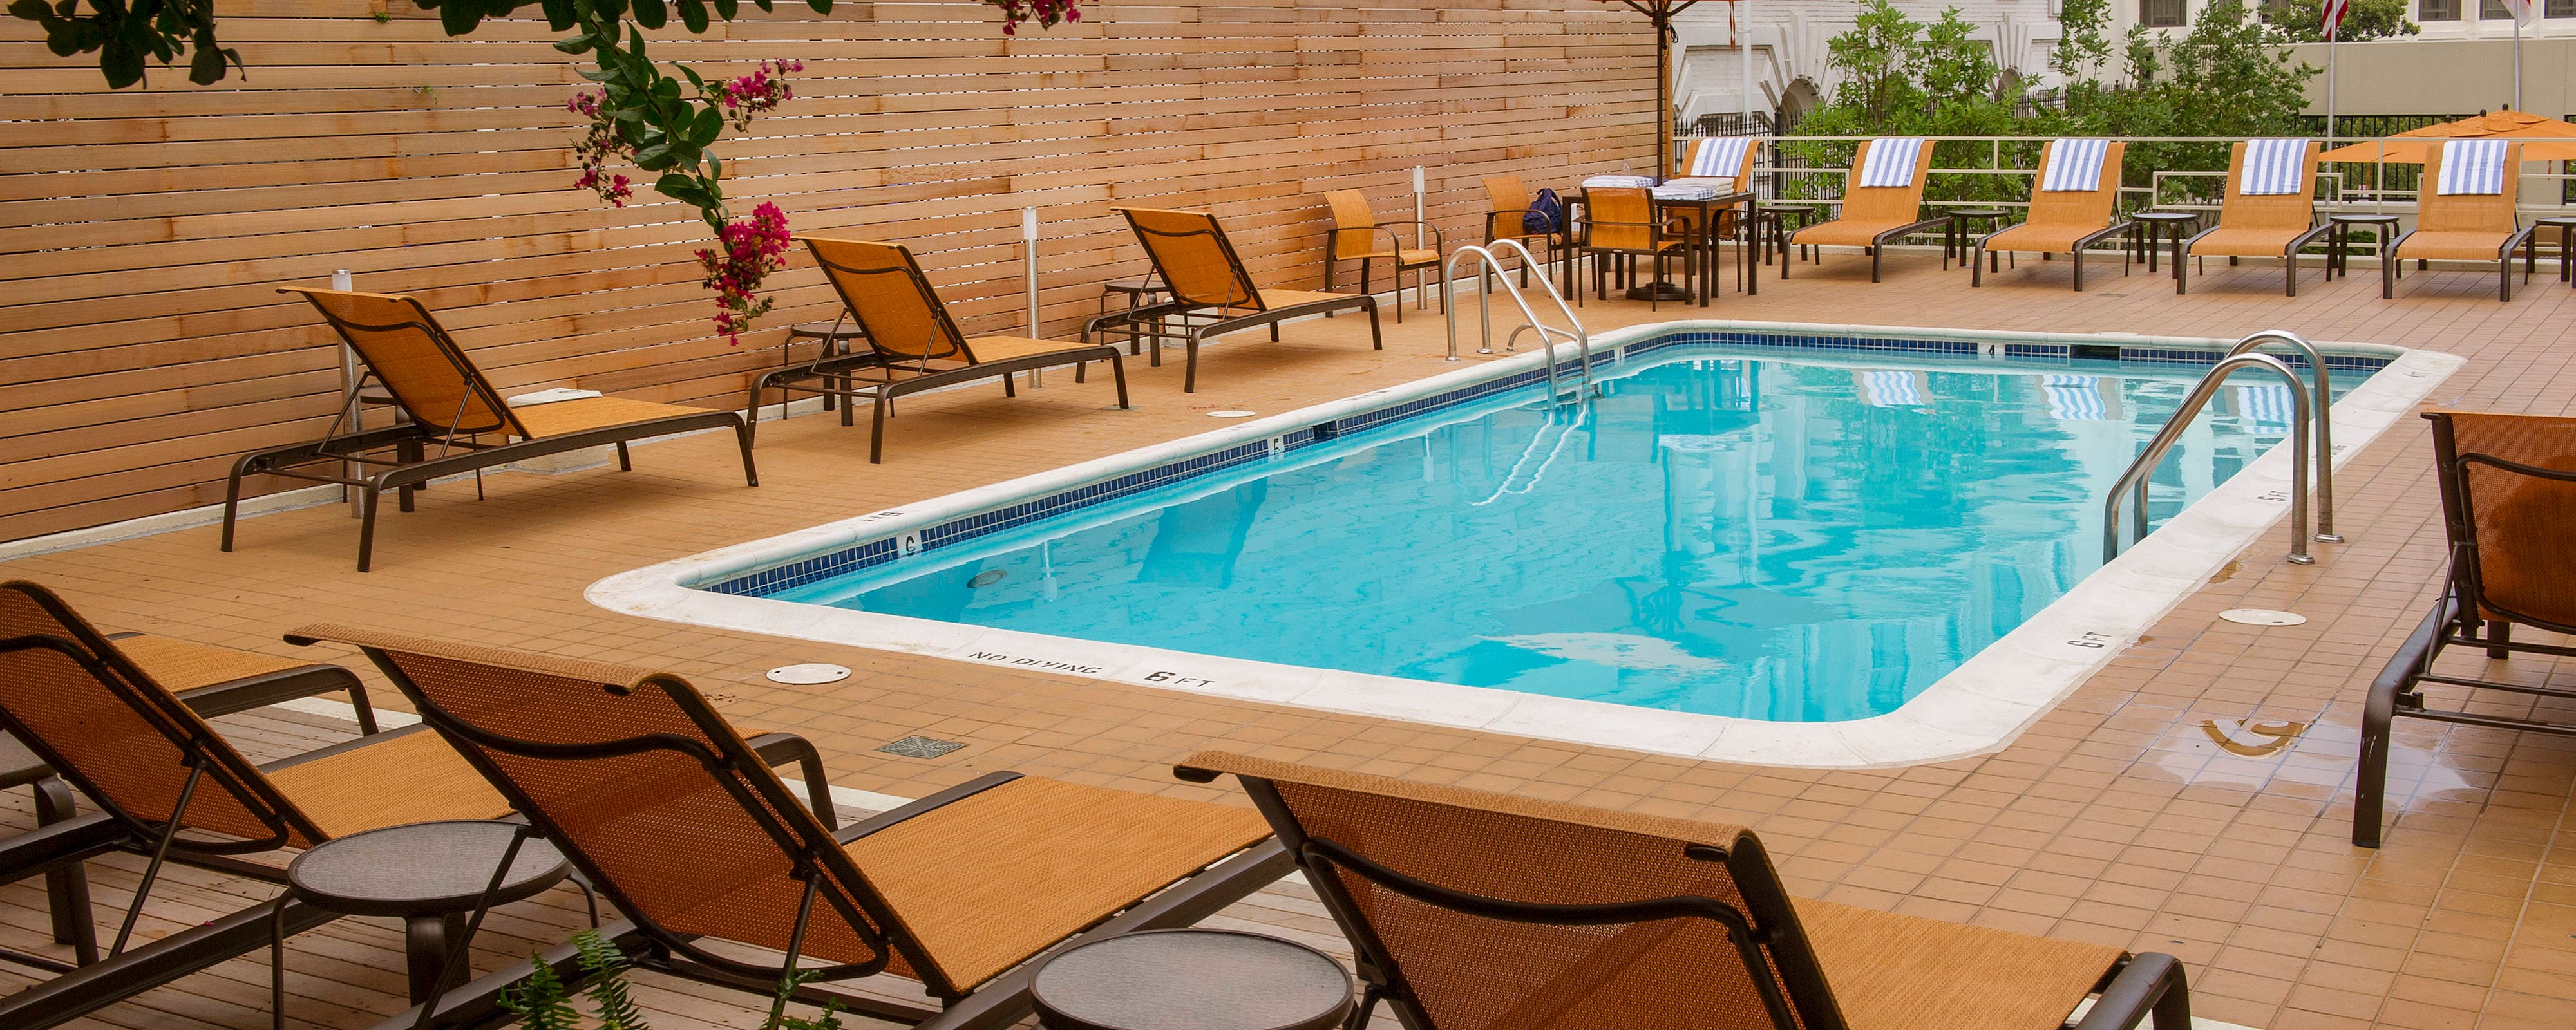 Washington d c hotels with outdoor pool courtyard - Washington park swimming pool hours ...